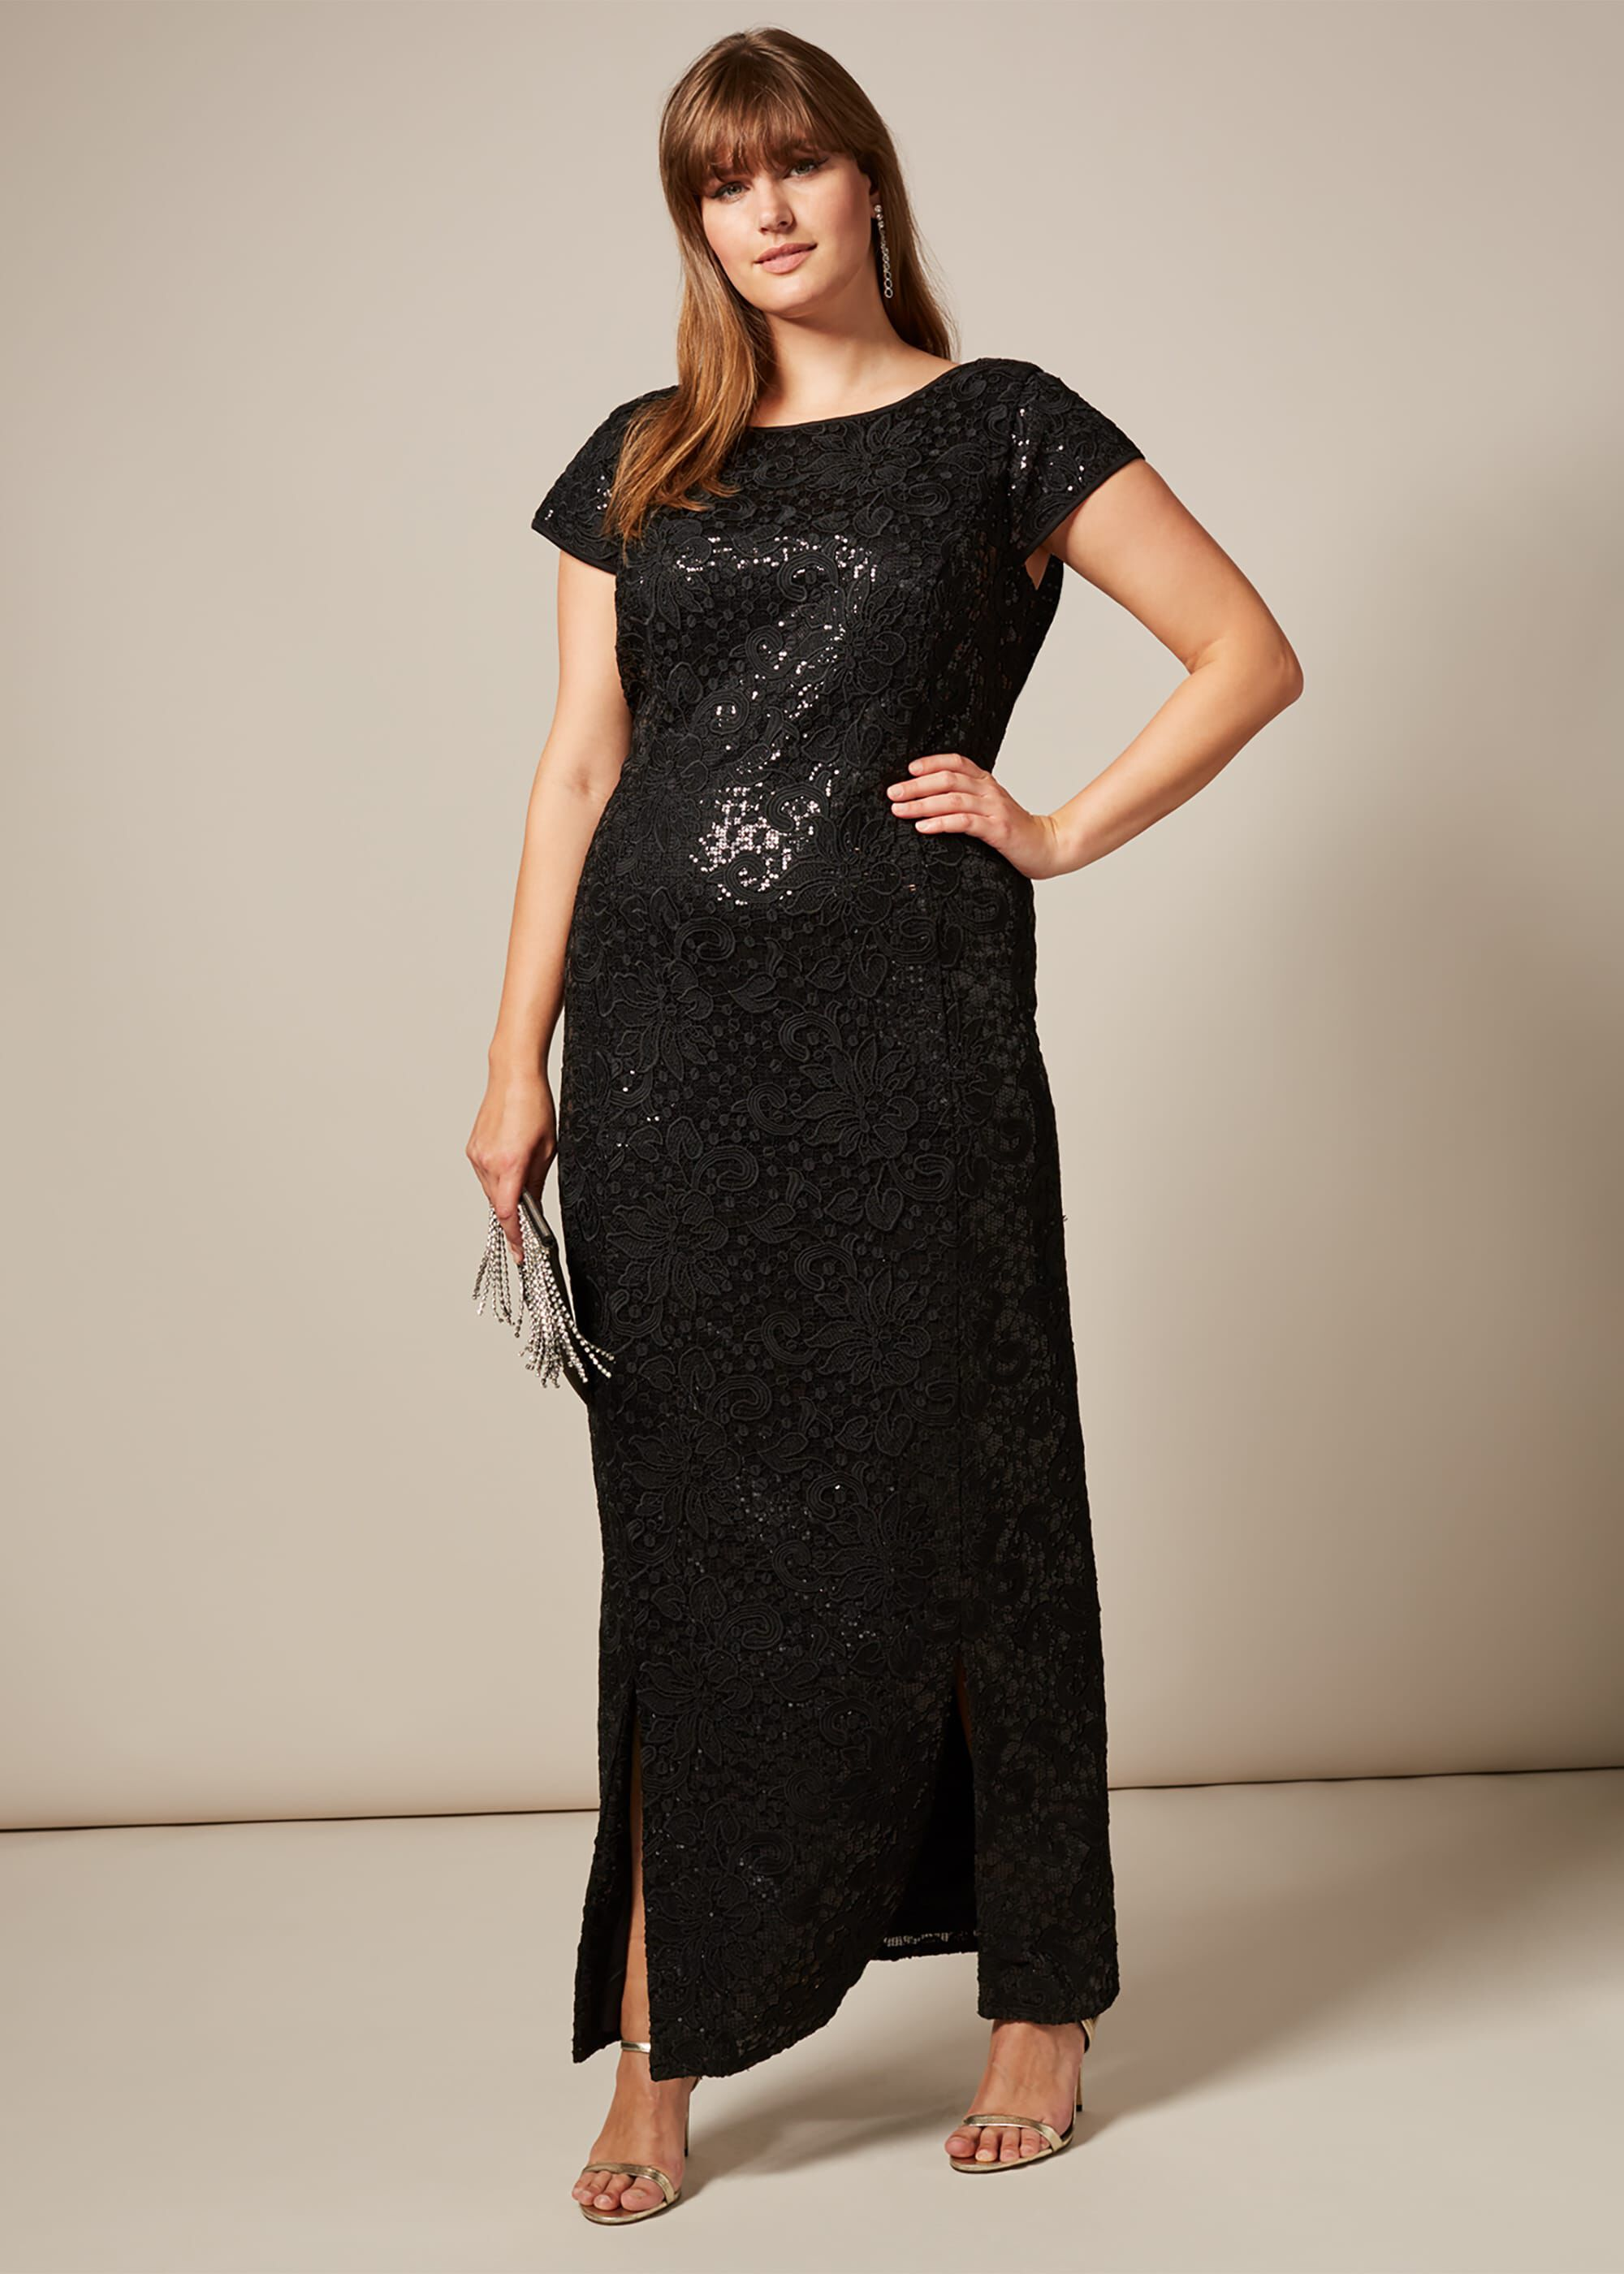 Studio 8 Lexi Maxi Dress, Black, Maxi, Occasion Dress